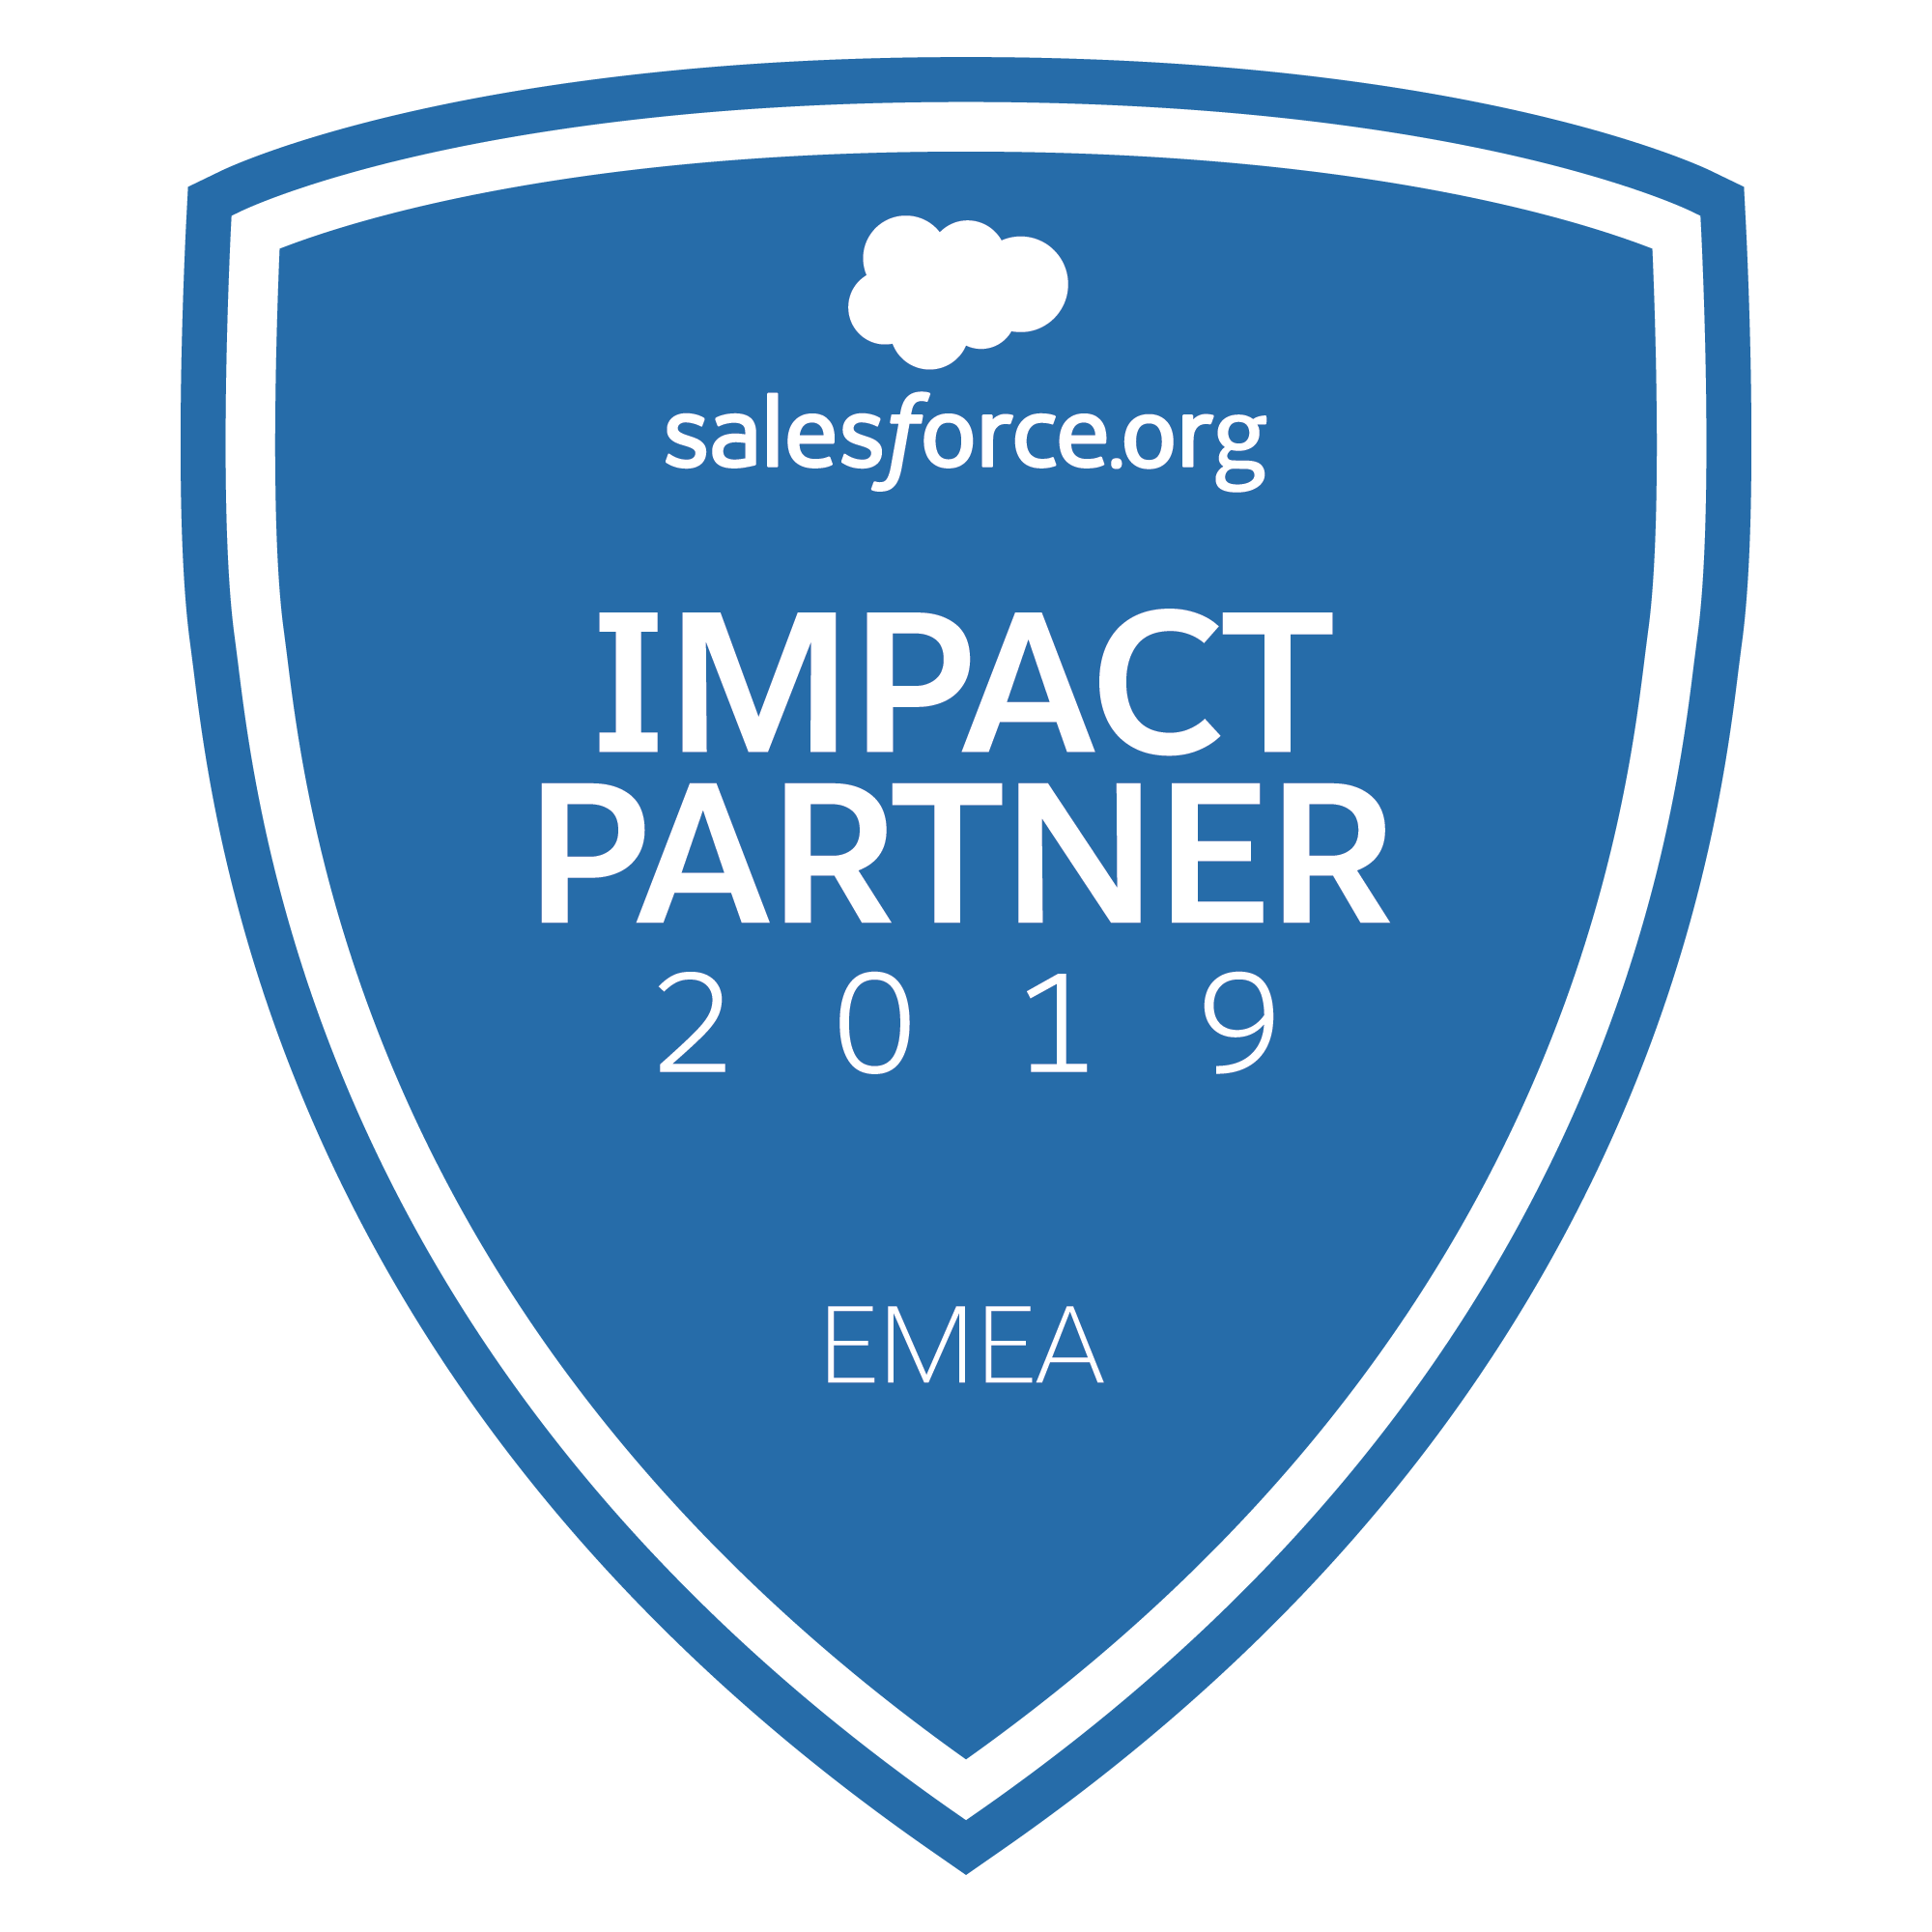 Salesforce.org Impact Partner Badge